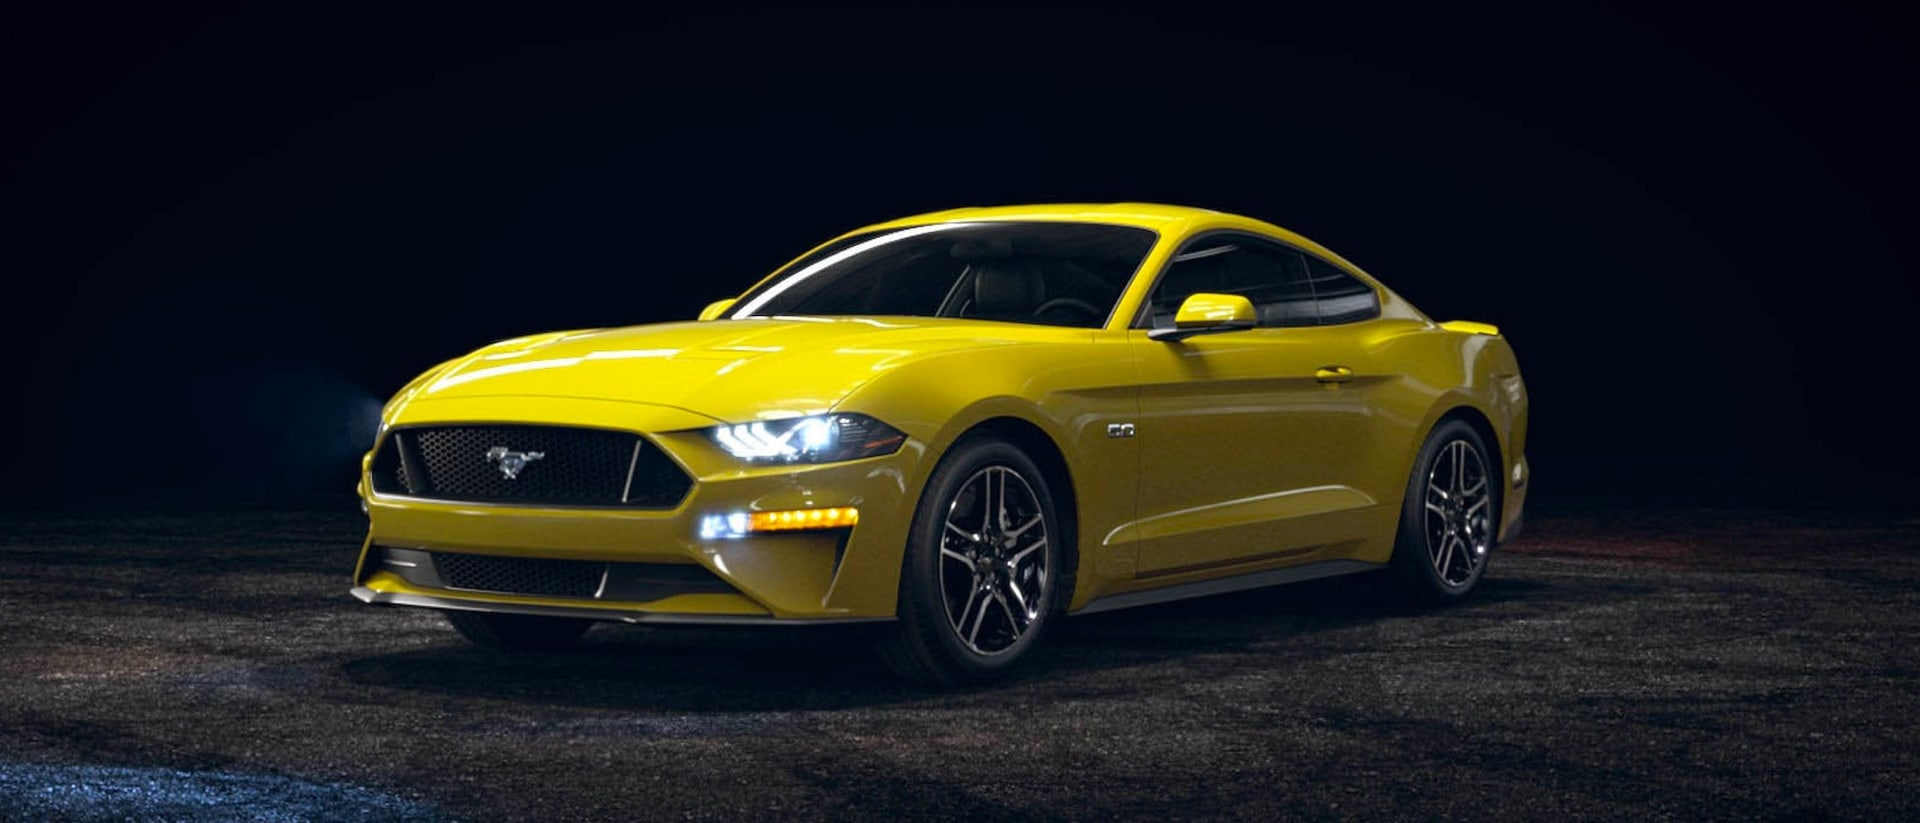 2021 Ford Mustang in Grabber Yellow